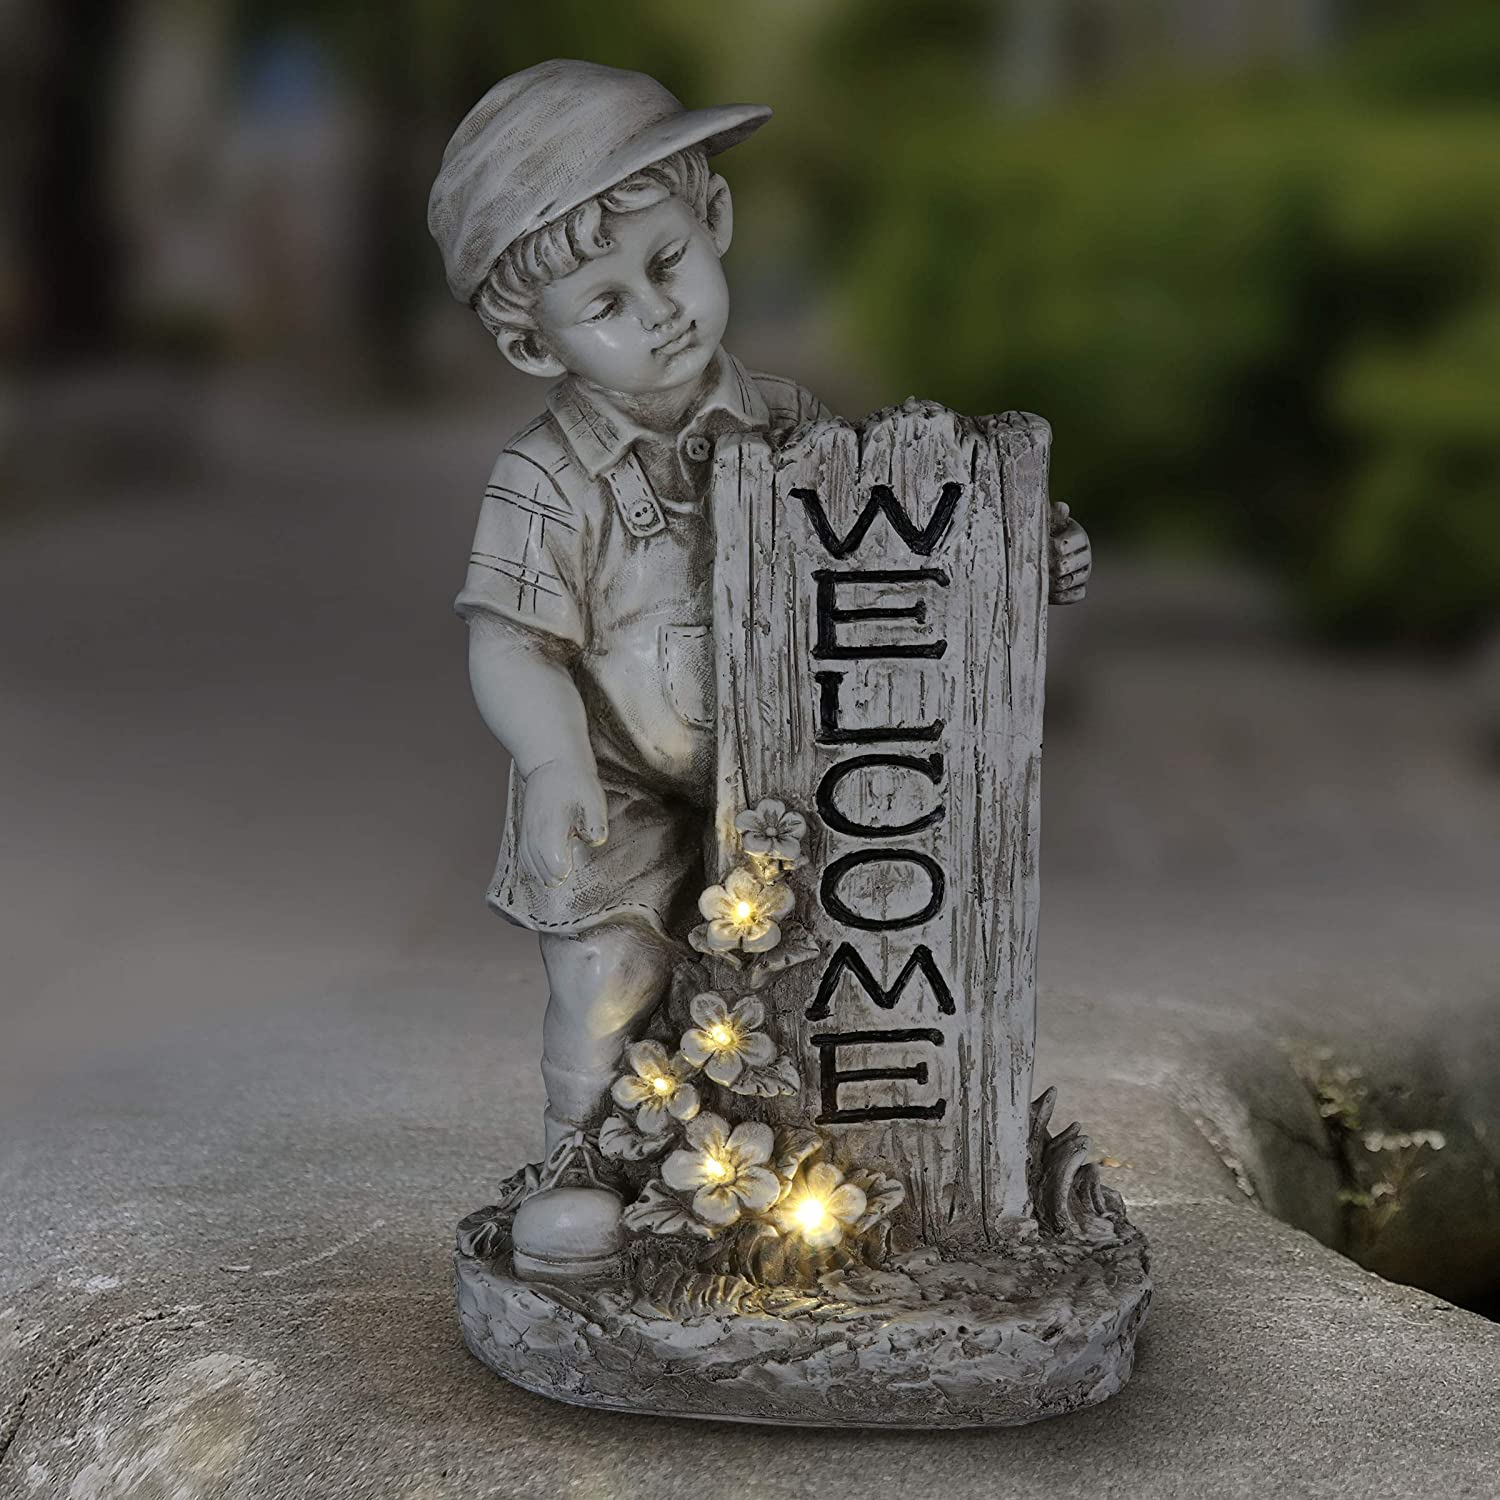 Exhart Solar Boy w/Welcome Sign Garden Statue for Outdoor Decor | Solar Powered LED Light Flowers Statue for Garden, Lawn or Yard -Made of Natural Resin Finish Art Boy Statuary